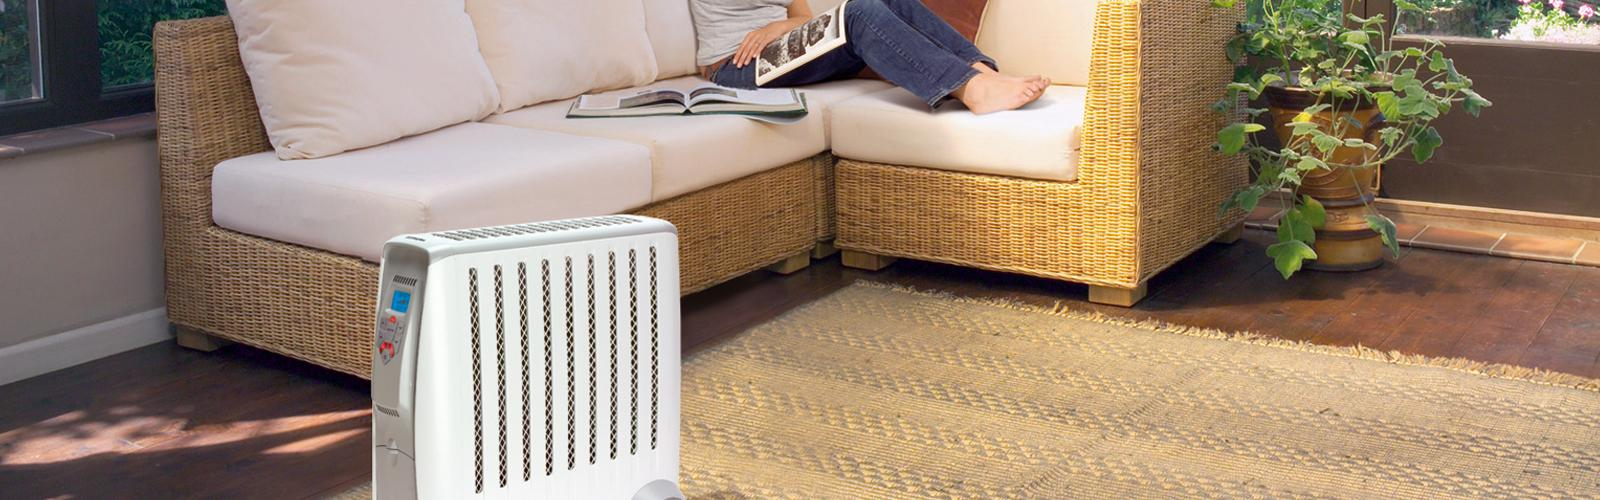 Benefits Of Portable Electric Heating Heaters Also Room Heater You Can Buy